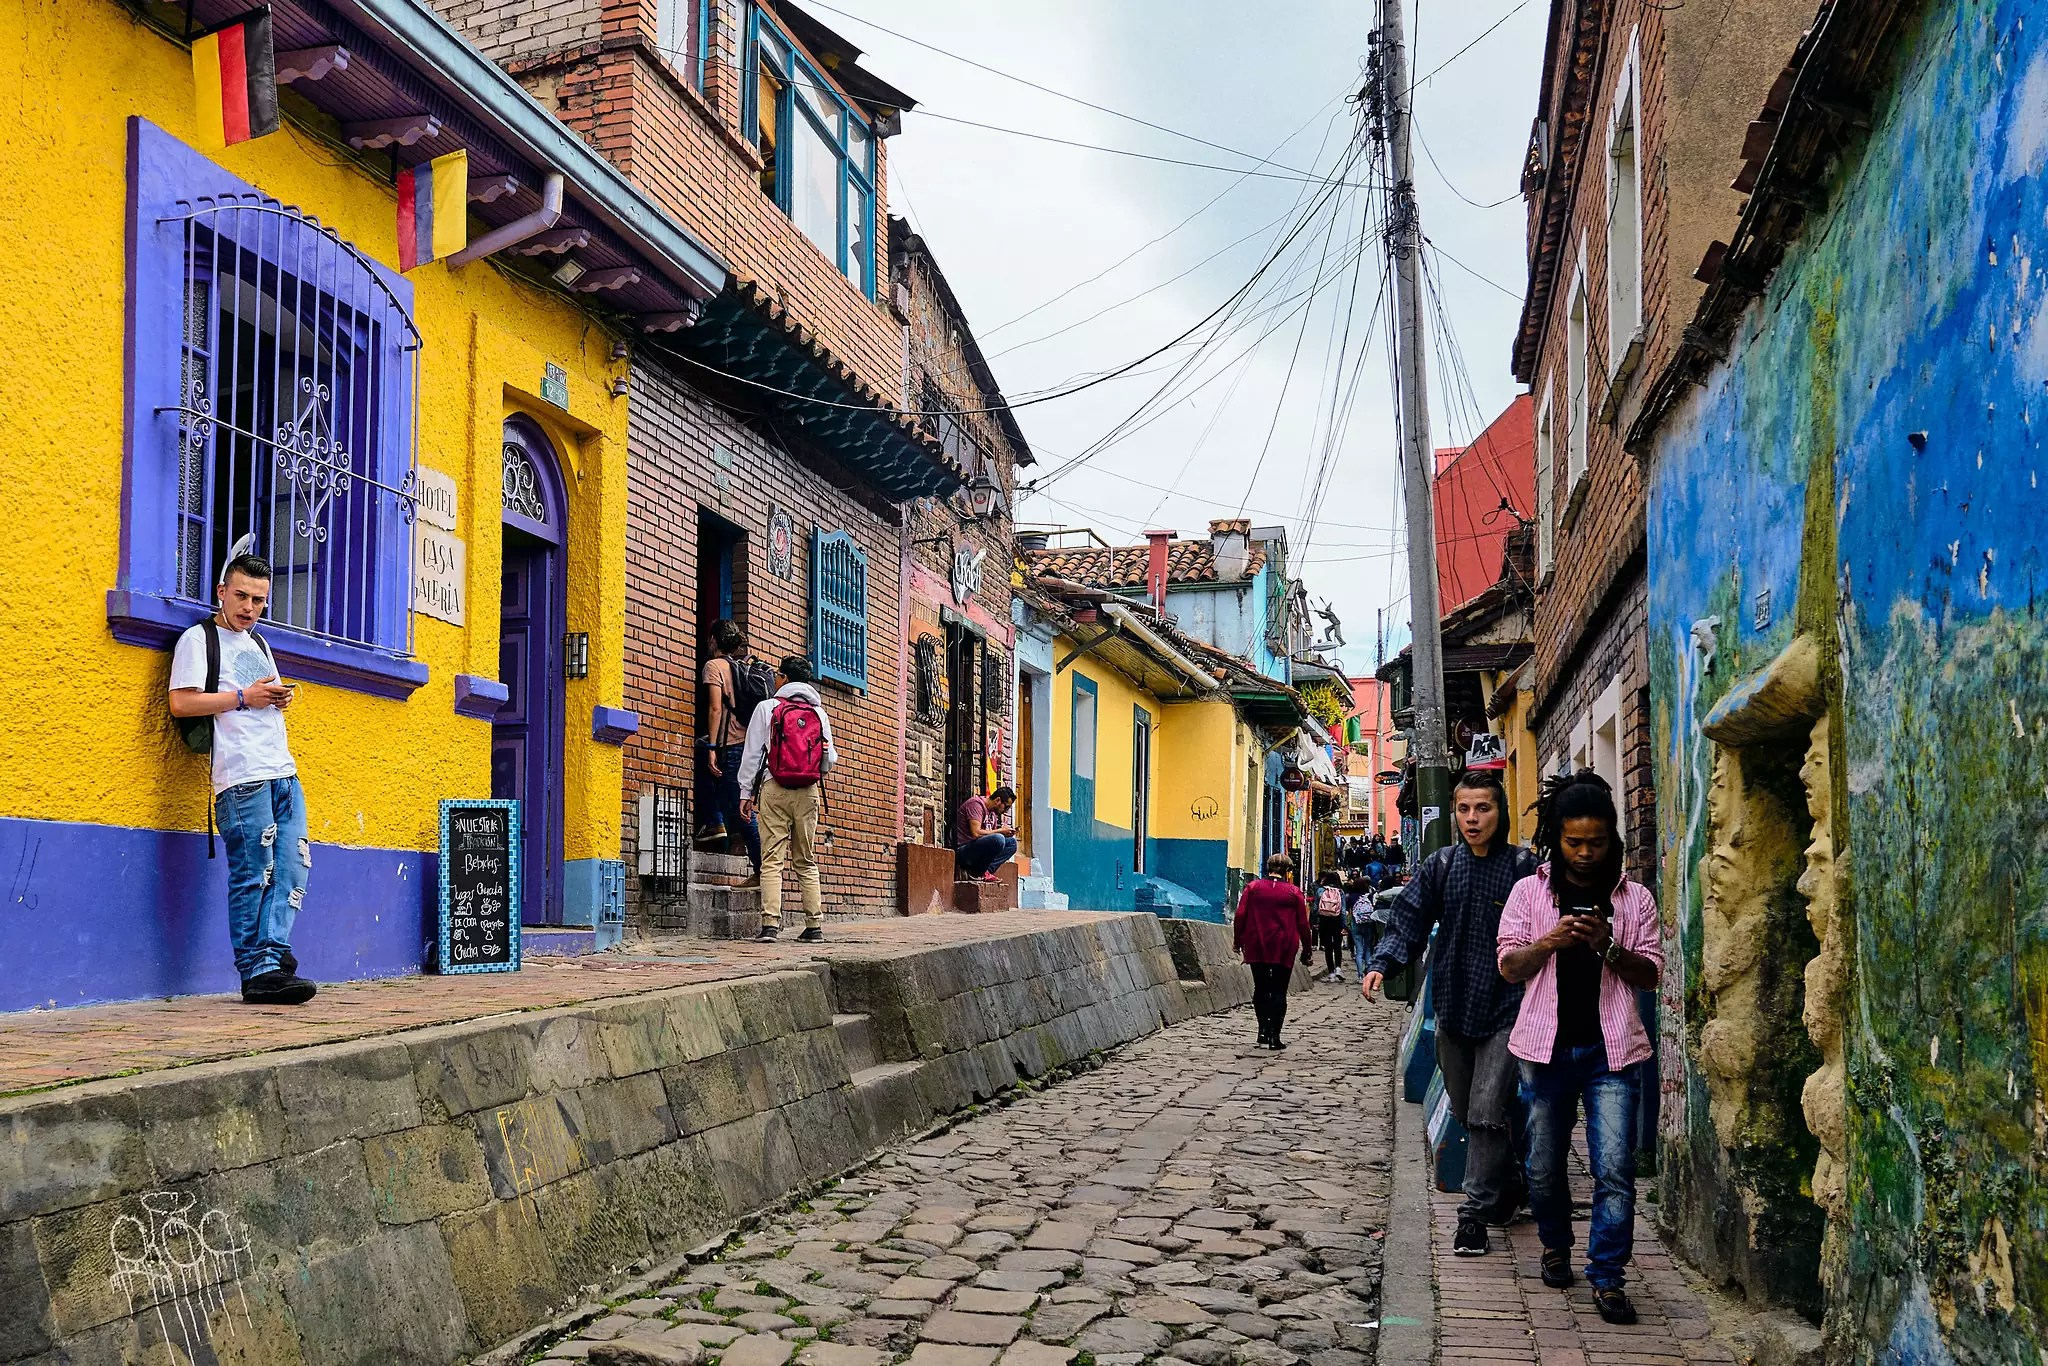 Bogota, Colombia - photo by Pedro Szekely under CC BY-SA 2.0